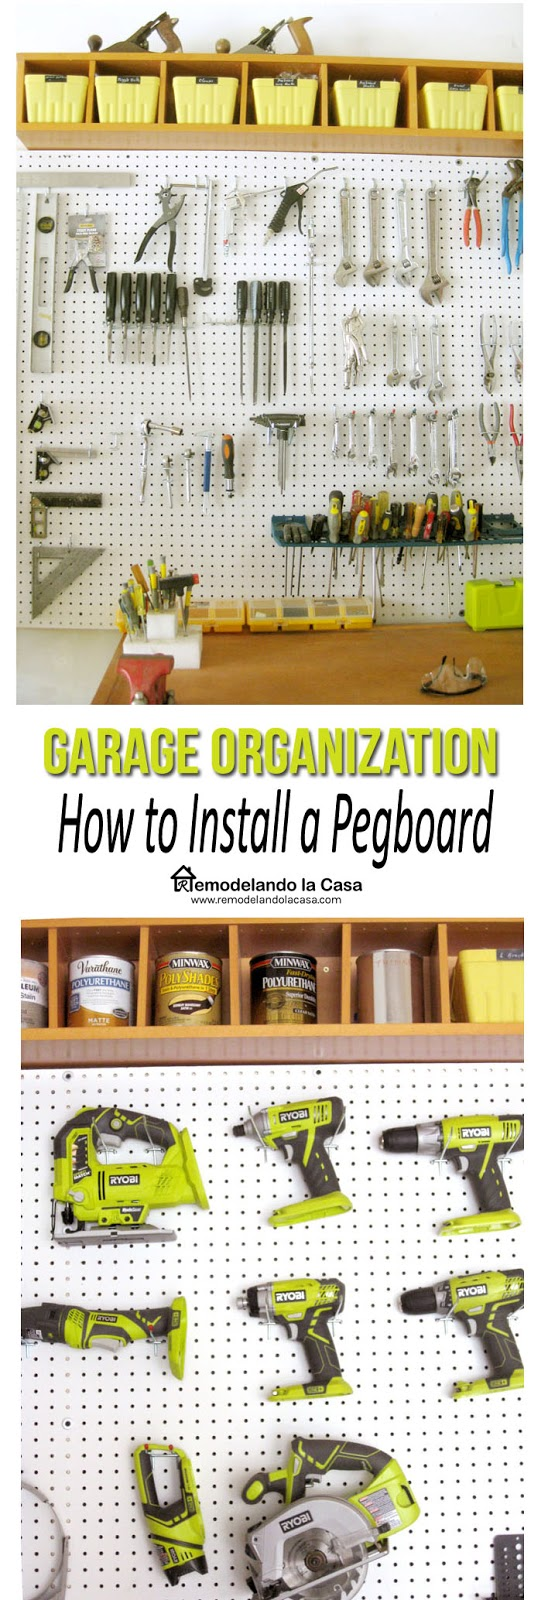 Ryobi tools organized on pegboard and how to install it.